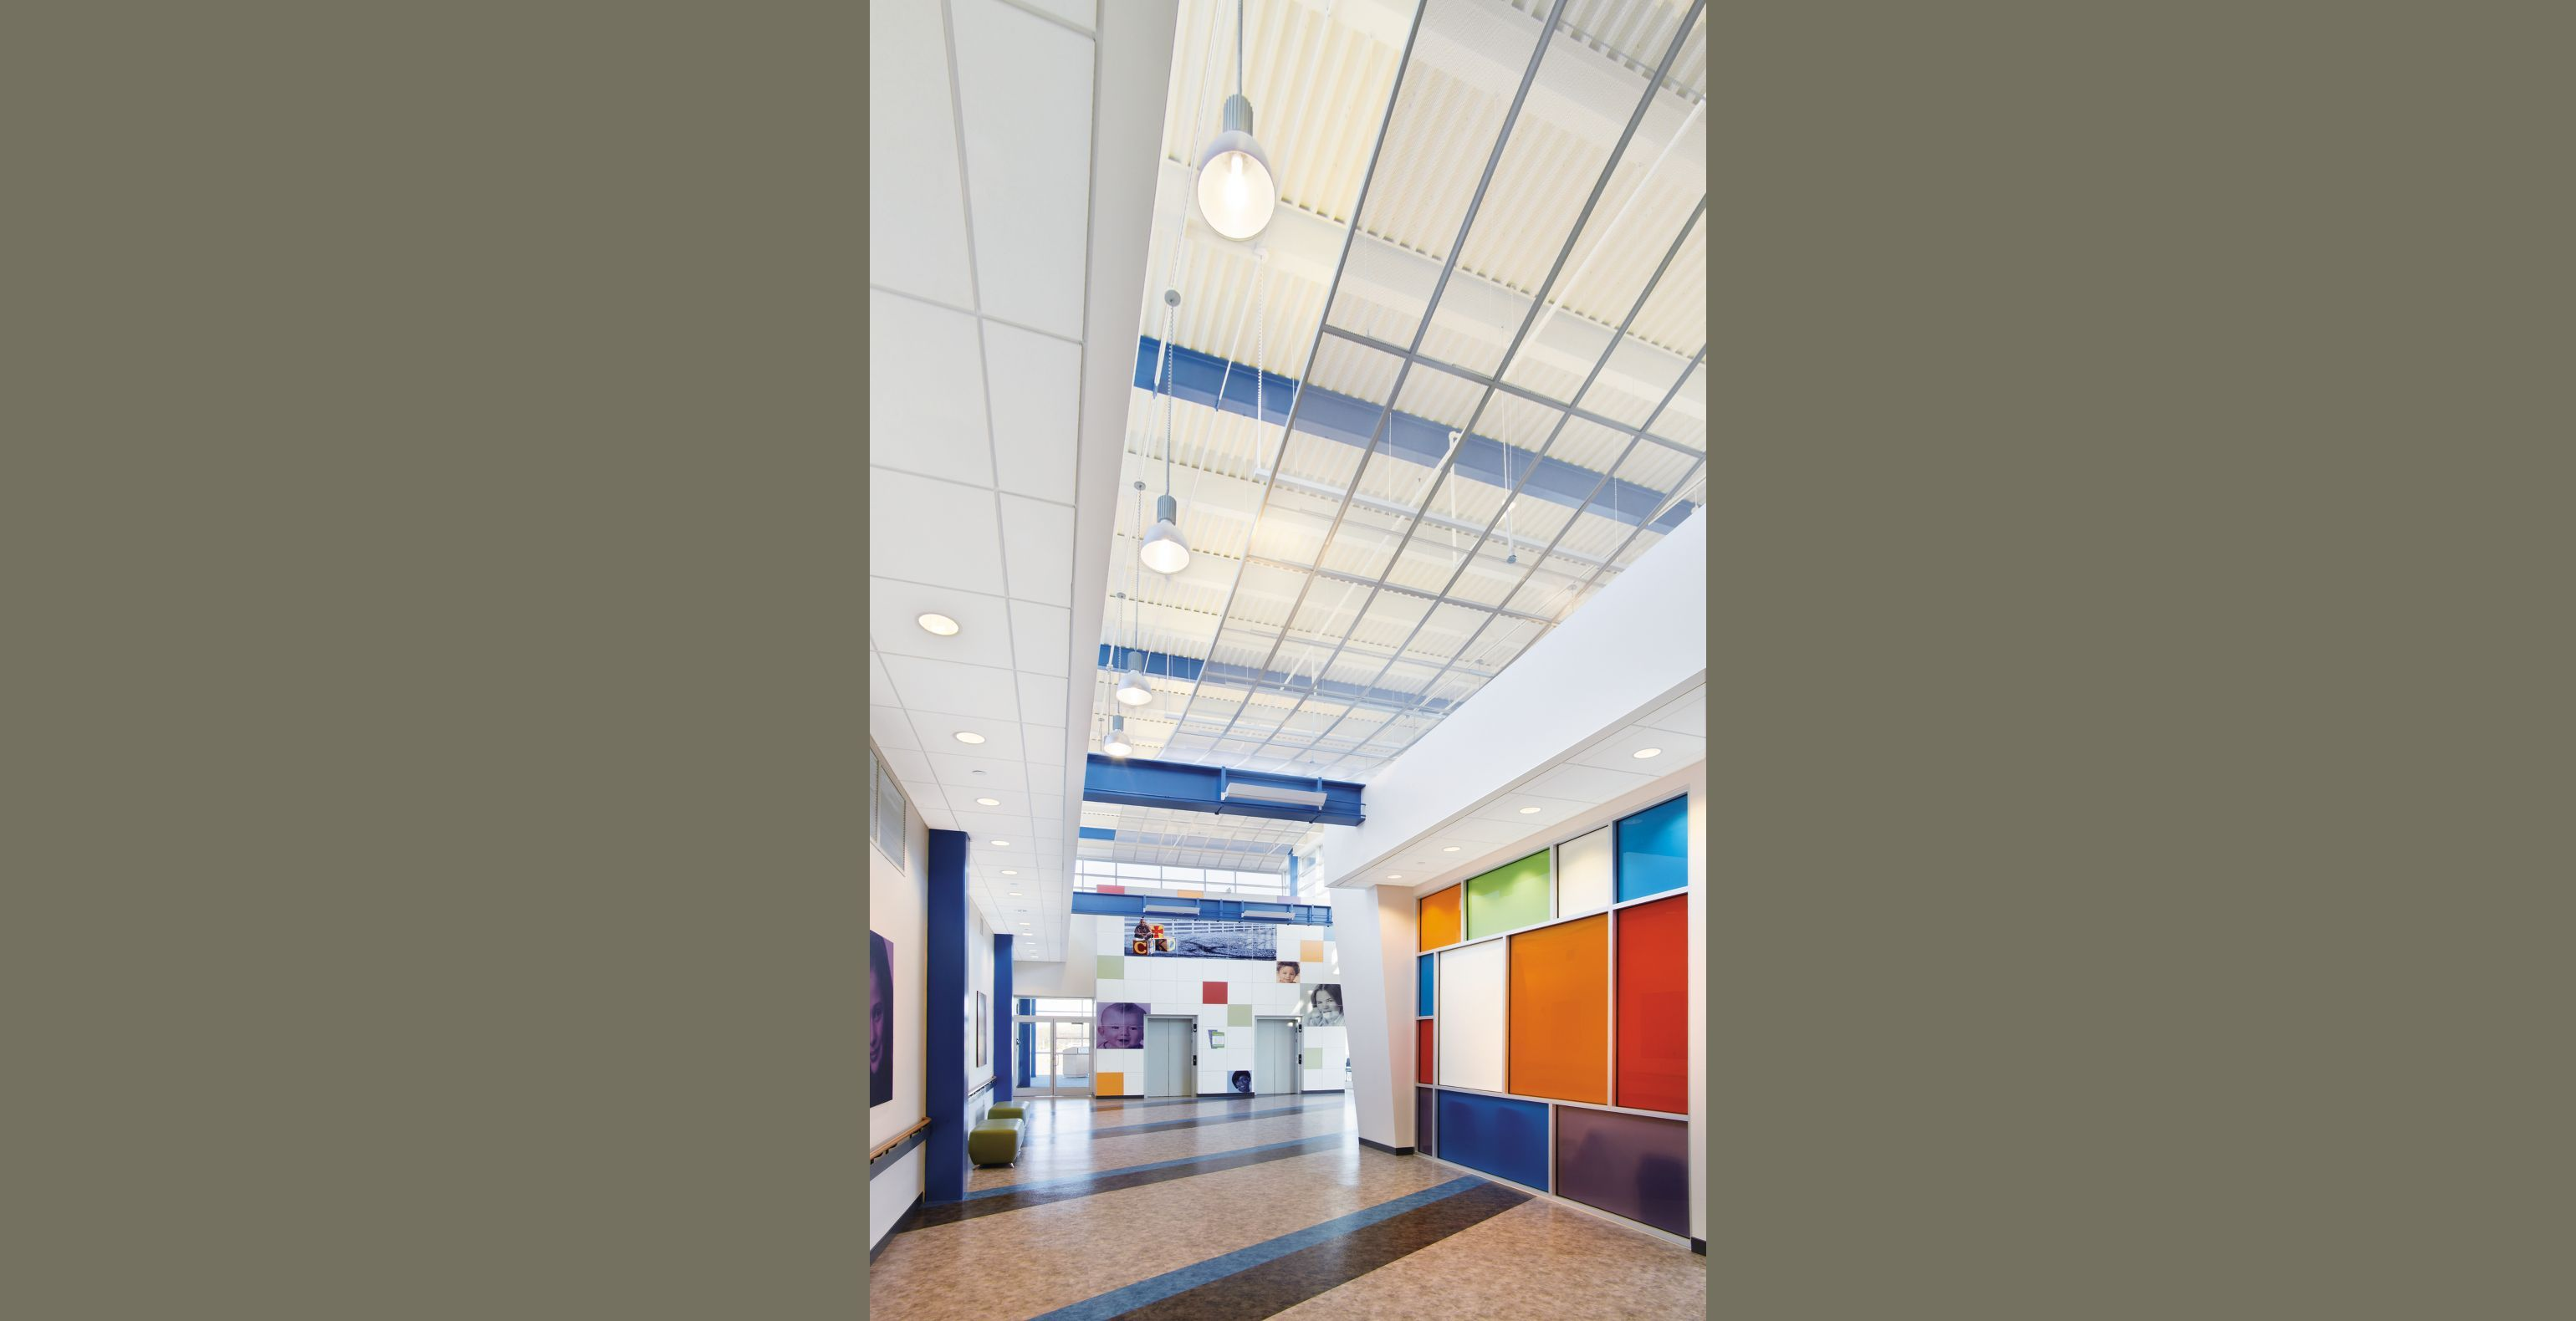 armstrong system ceilings raised tile suspended mineral panels specialty grid fiber decorators ceiling pvc acoustic panel